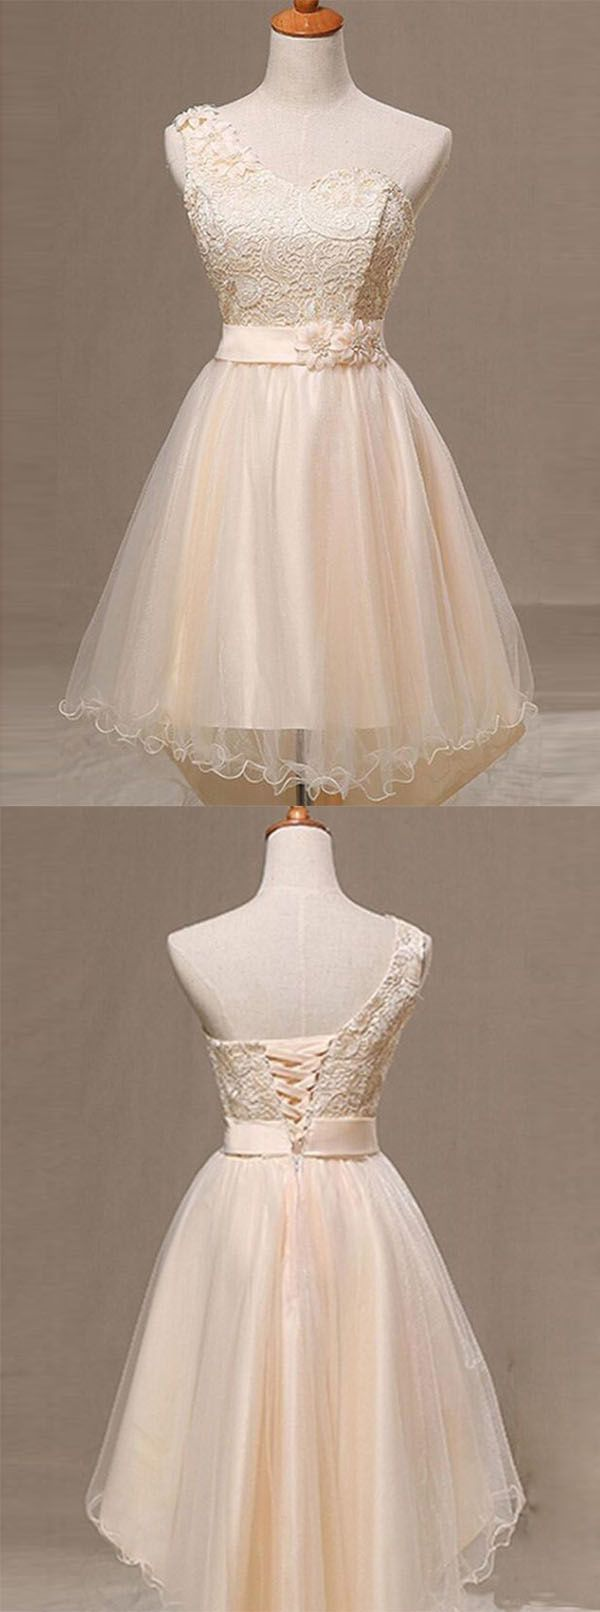 https://www.dresstells.com/a-line-one-shoulder-champagne-organza-homecoming-dress-with-flower-lace-pleats.html    One shoulder sweetheart neckline tulle dress